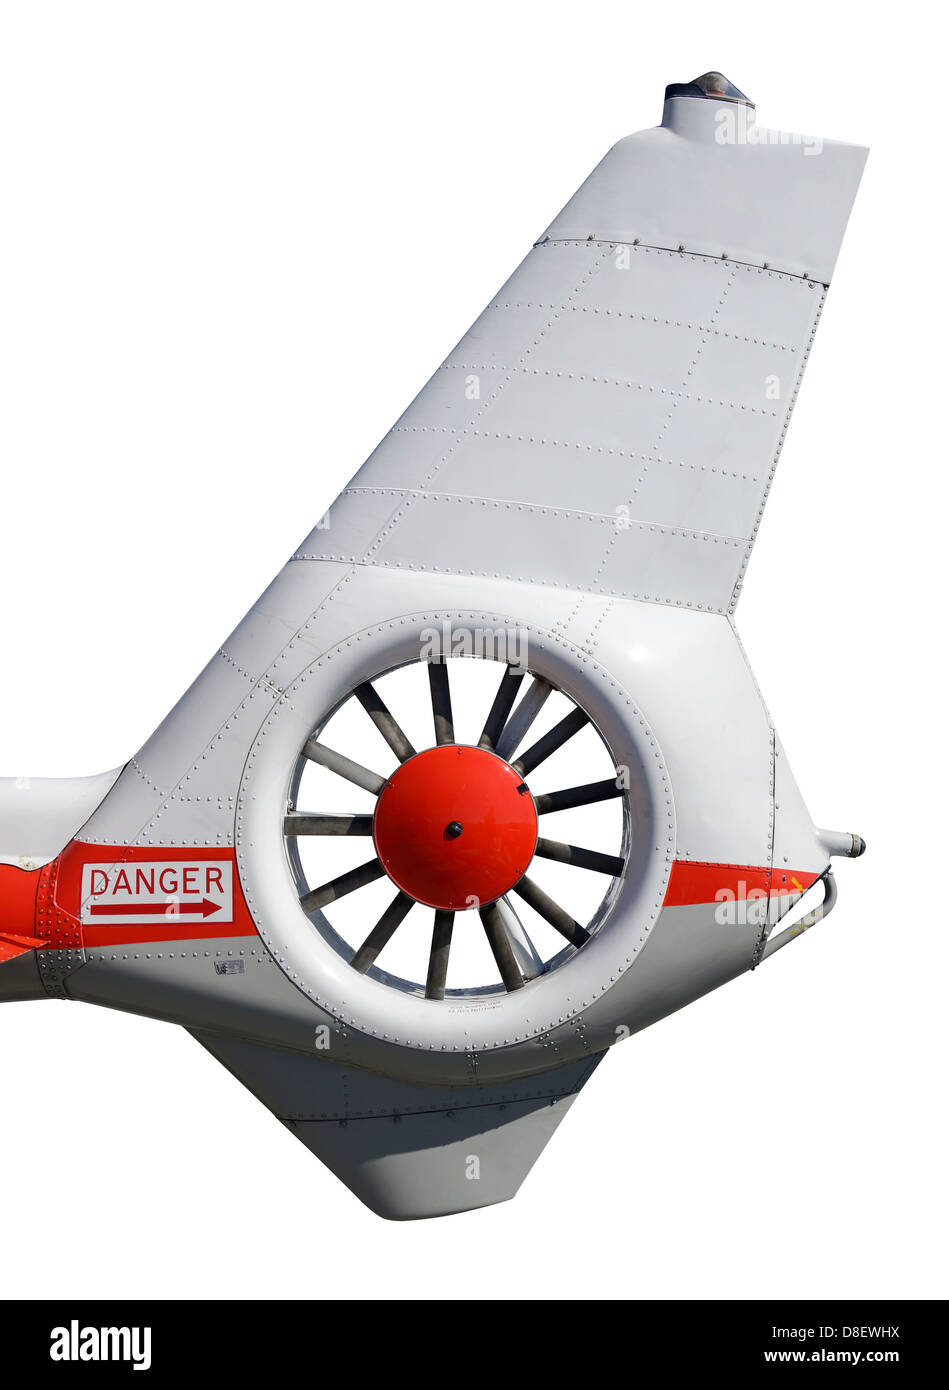 Helicopter tail rotor detail - Stock Image